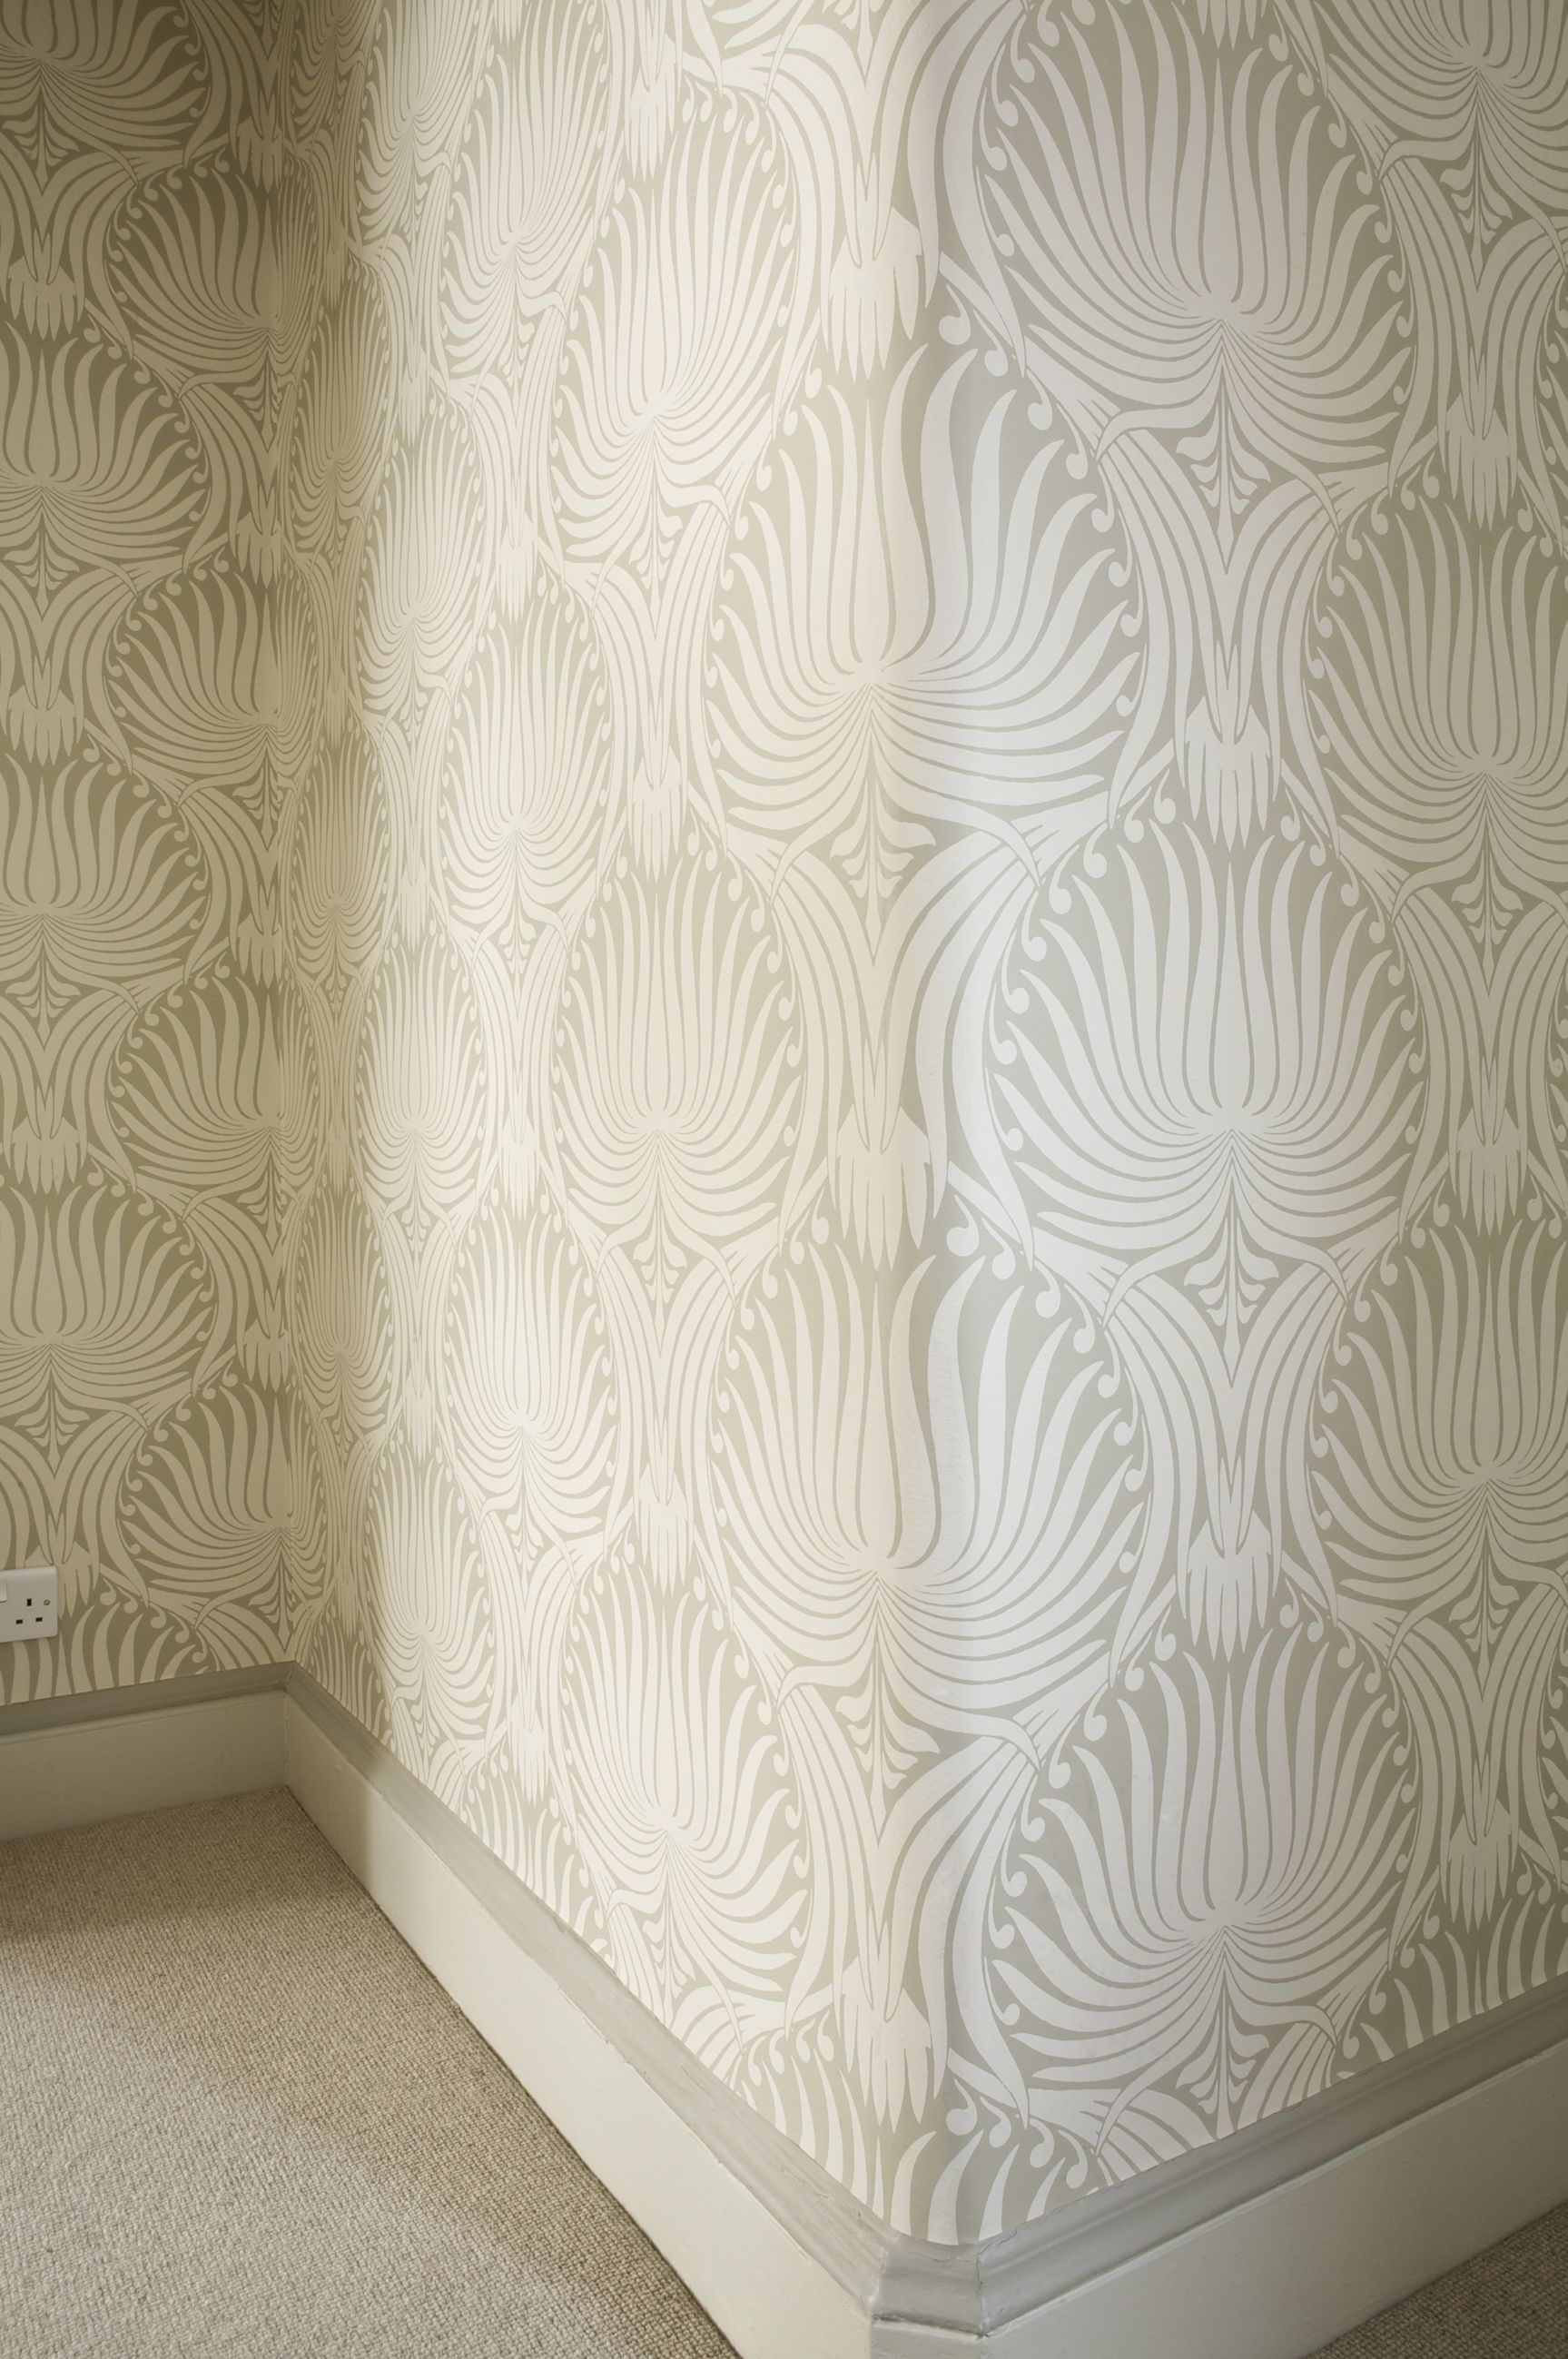 Farrow Ball Lotus Wallpaper BP2009 With Skirting In Slipper Satin Paint